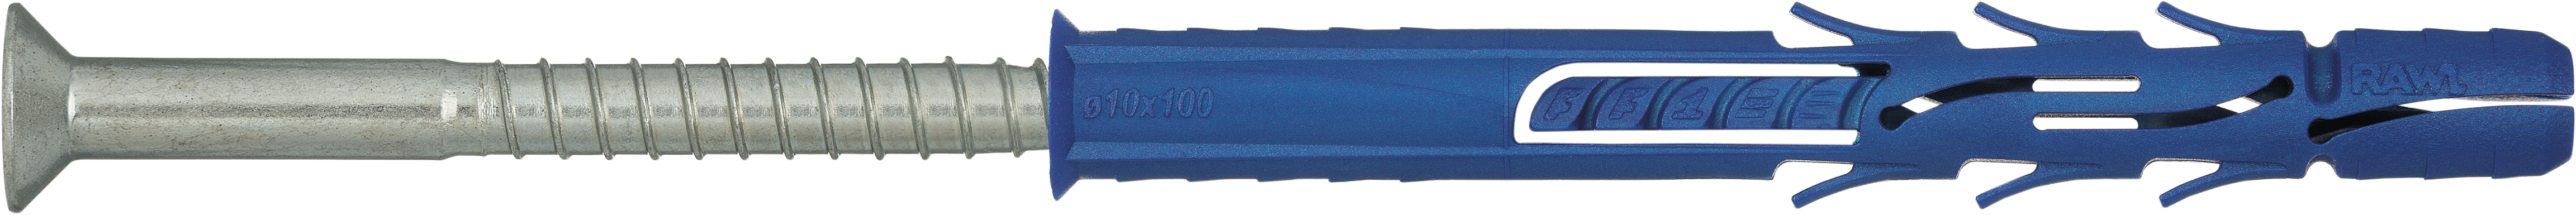 R-FF1-L-DT Nylon frame fixing countersunk in corrosion-resistant coating